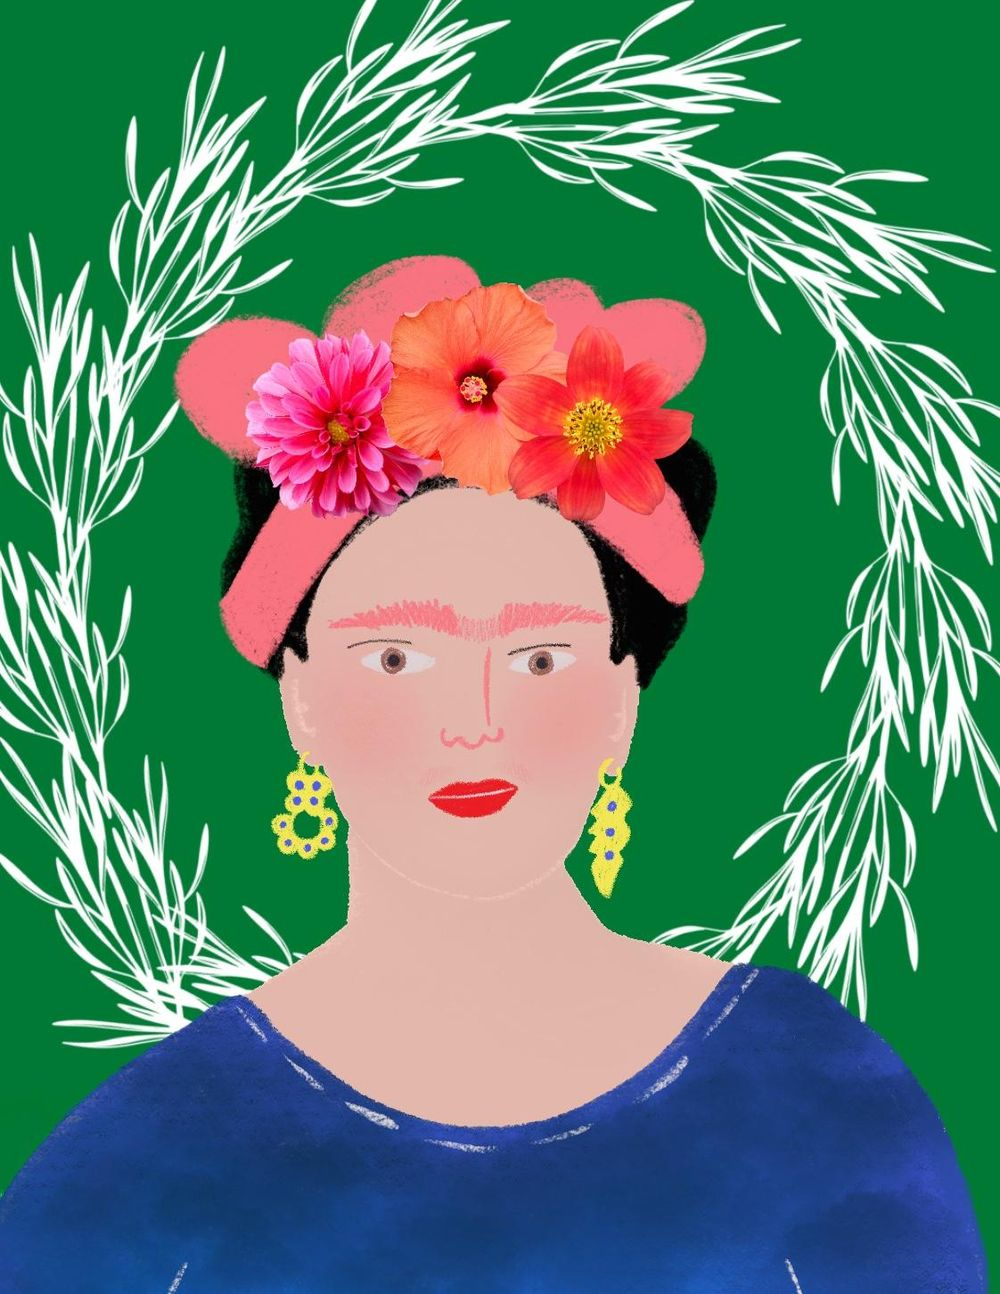 PINK FRIDA - image 1 - student project